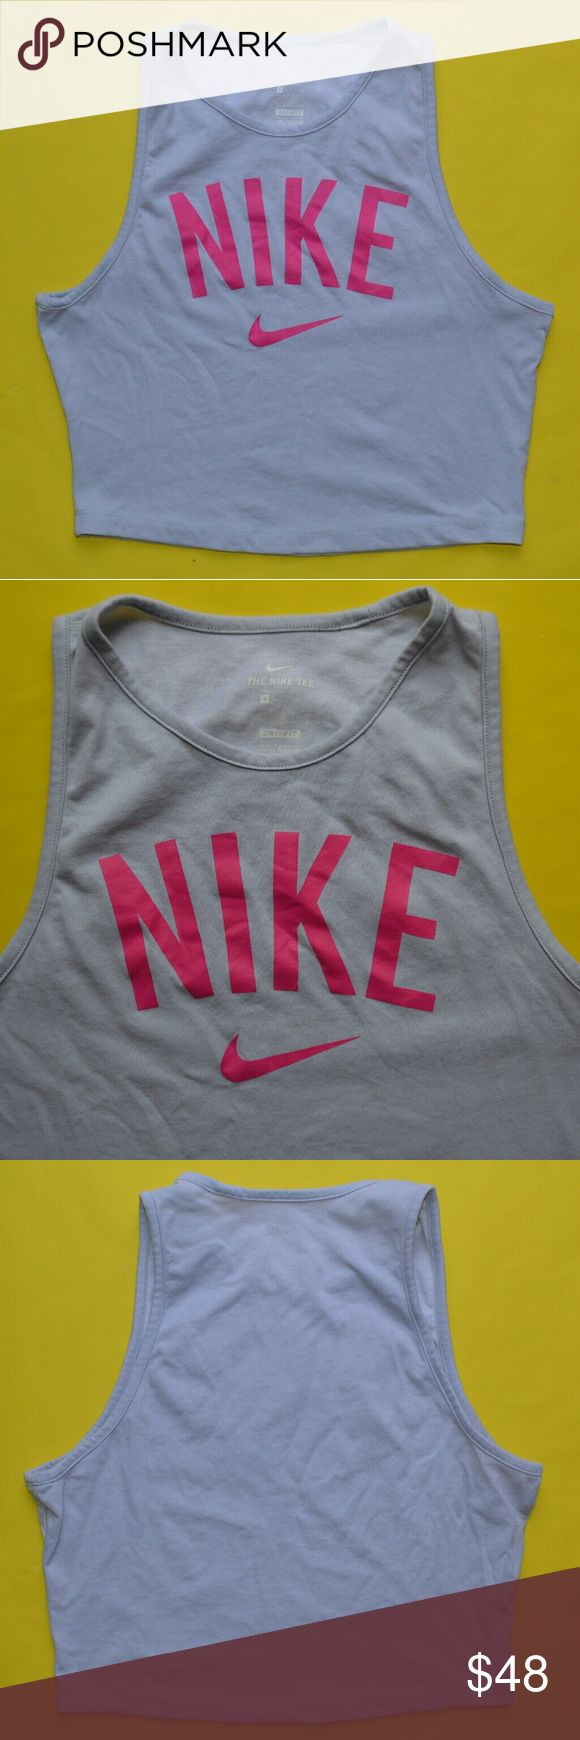 Brand New Nike Swoosh Logo Grey and Pink Crop Top Gorgeous grey and pink crop tank top from Nike. Super rare and 100% authentic shirt. I never wore this. Size small. Nike Tops Crop Tops